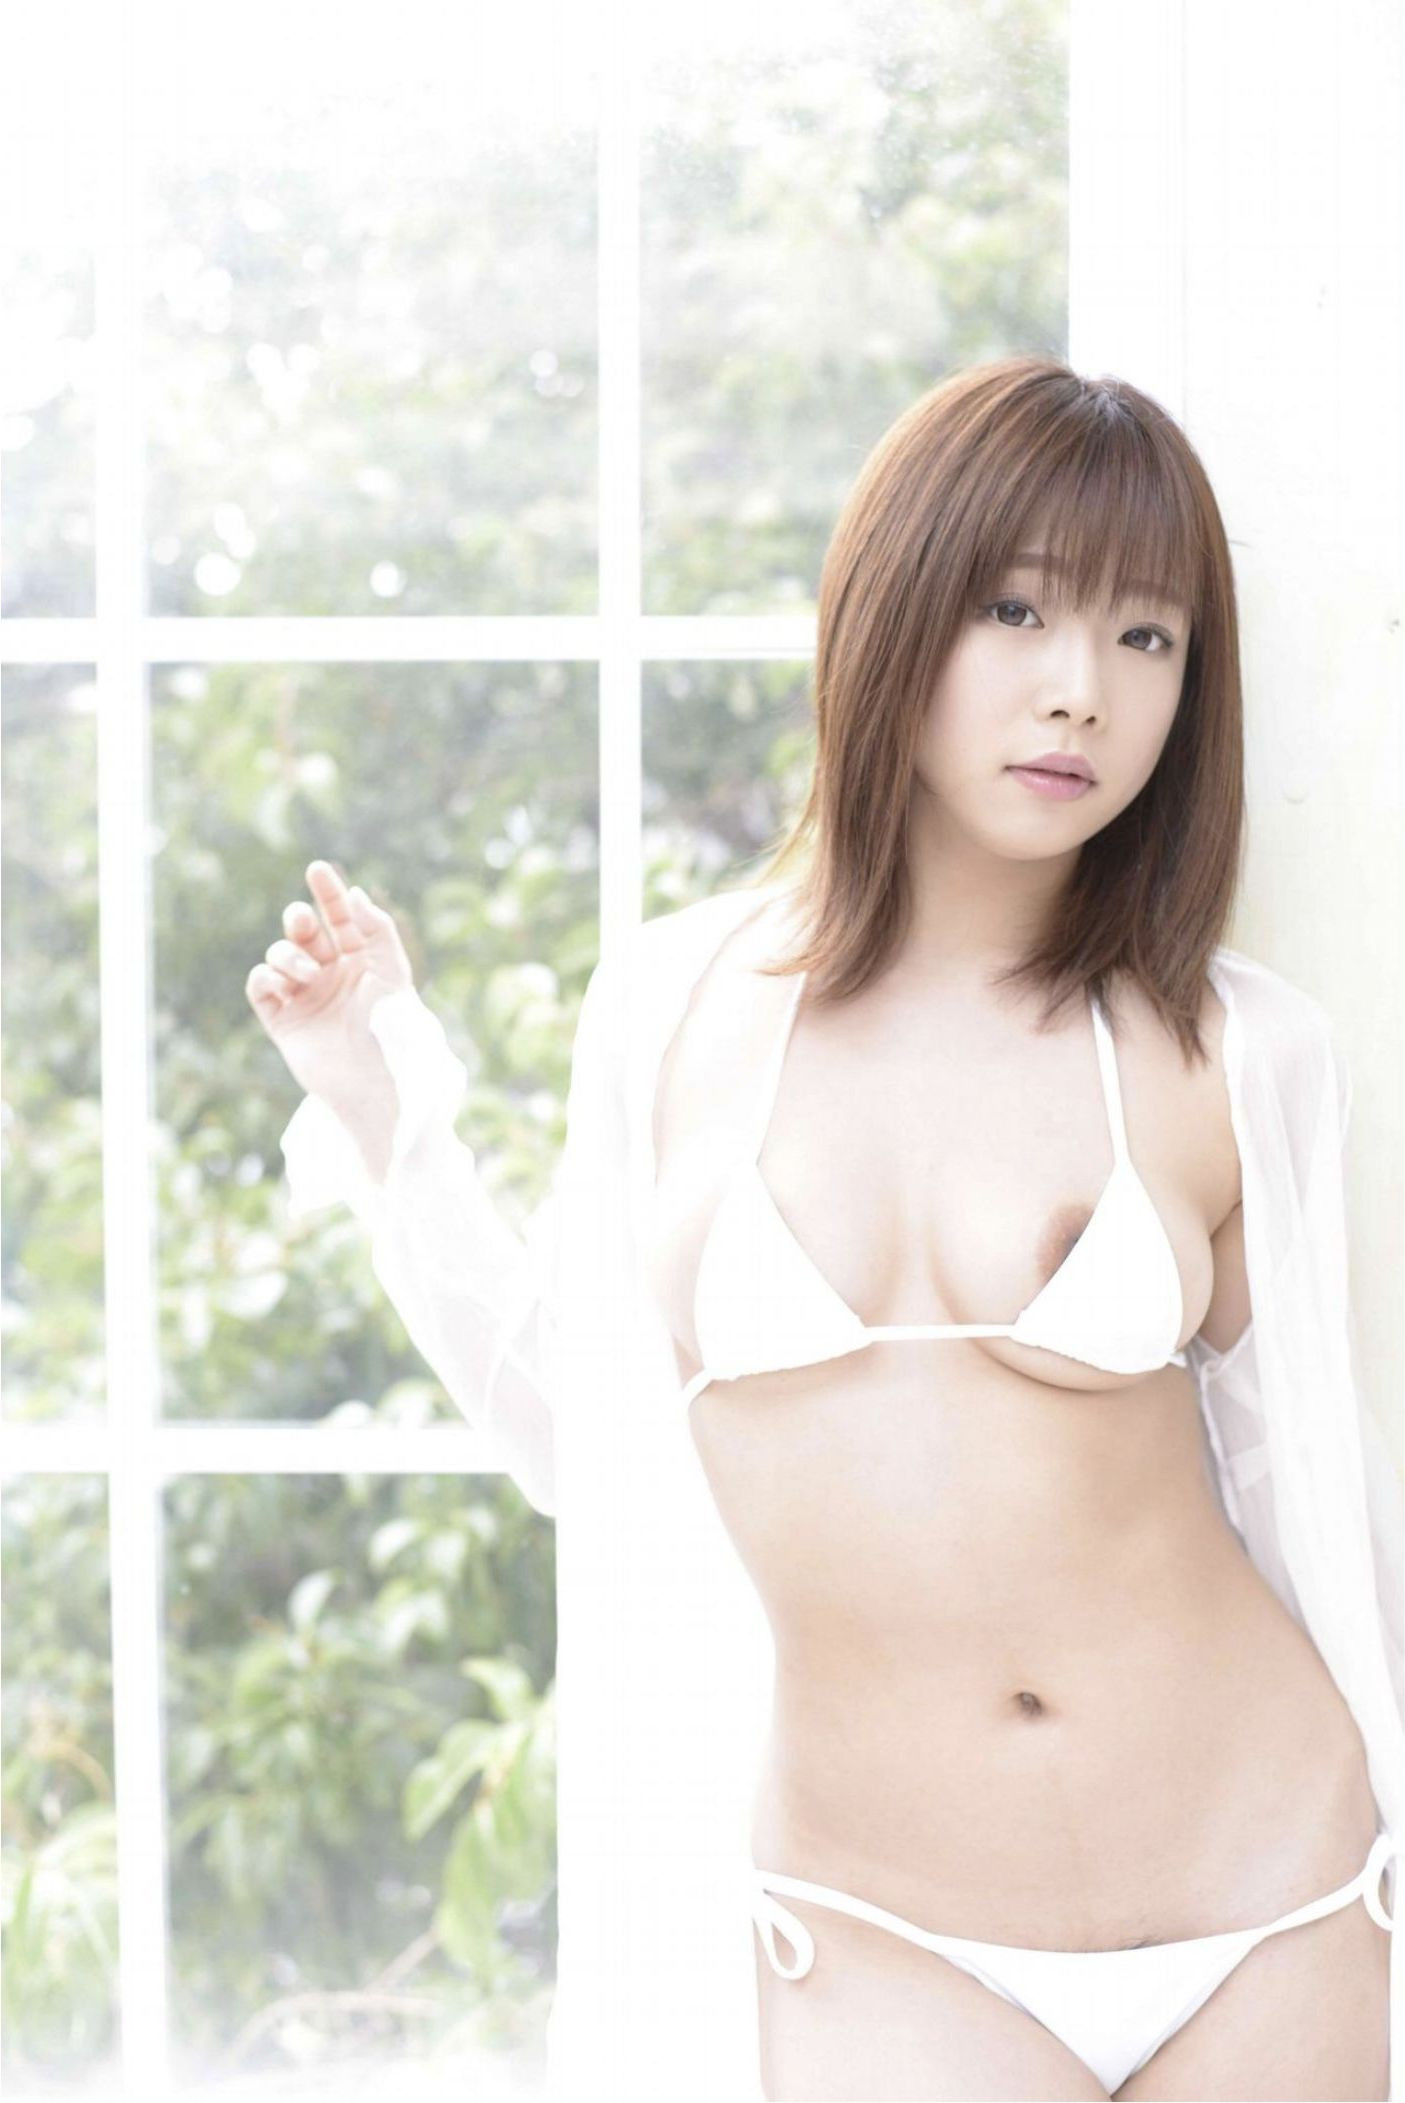 SOFT ON DEMAND GRAVURE COLLECTION 紗倉まな02 photo 014